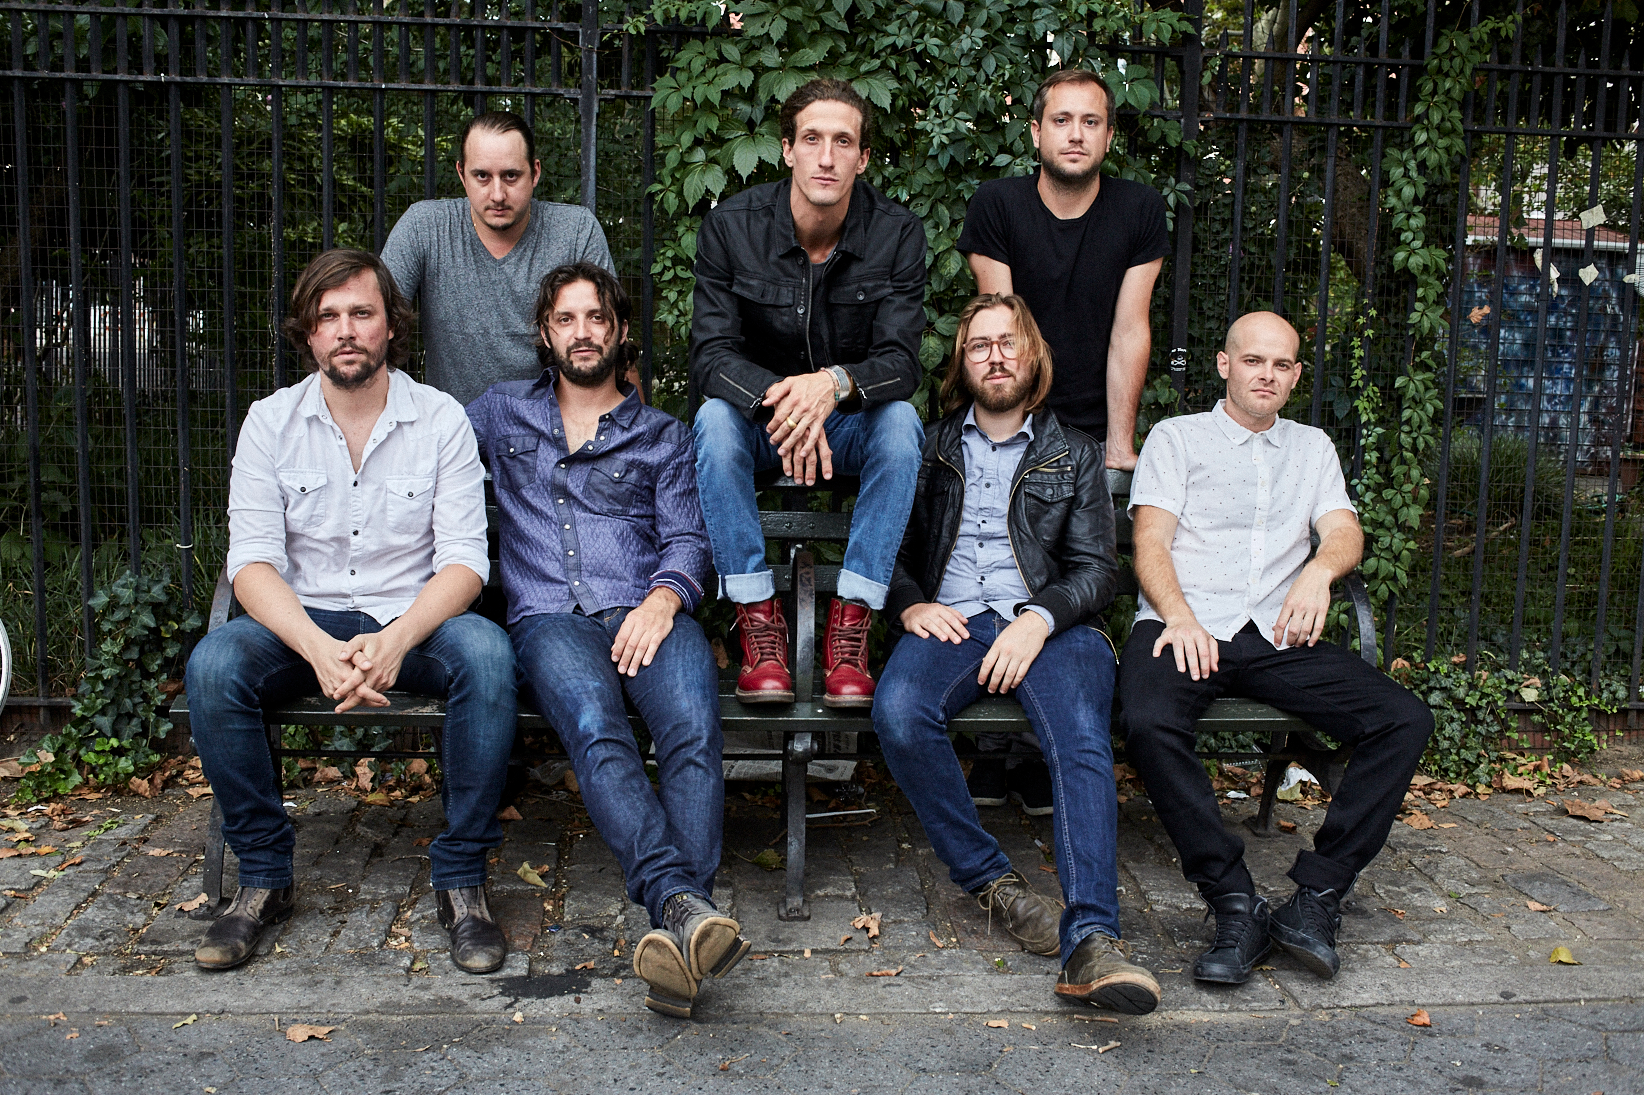 Exclusive Interview: The Revivalists Take Their NOLA Sound Nationwide